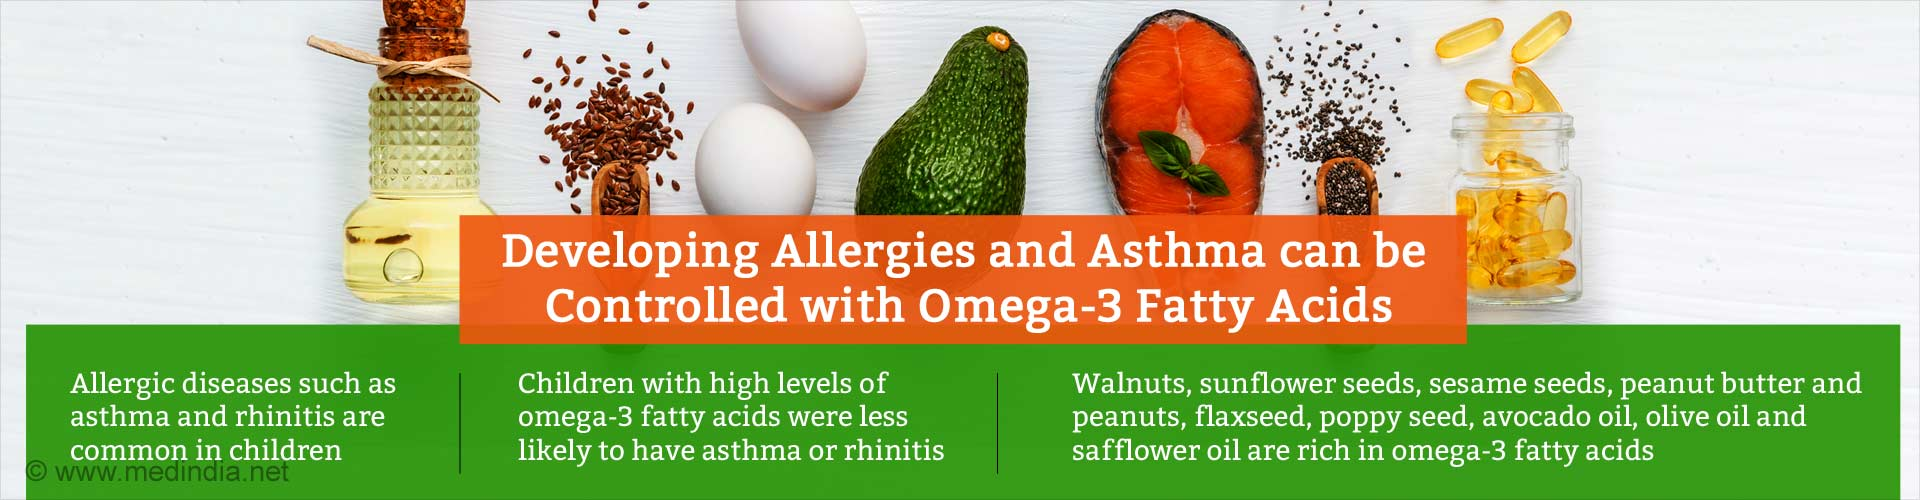 Developing Allergies and Asthma can be Controlled with Omega-3 Fatty Acids